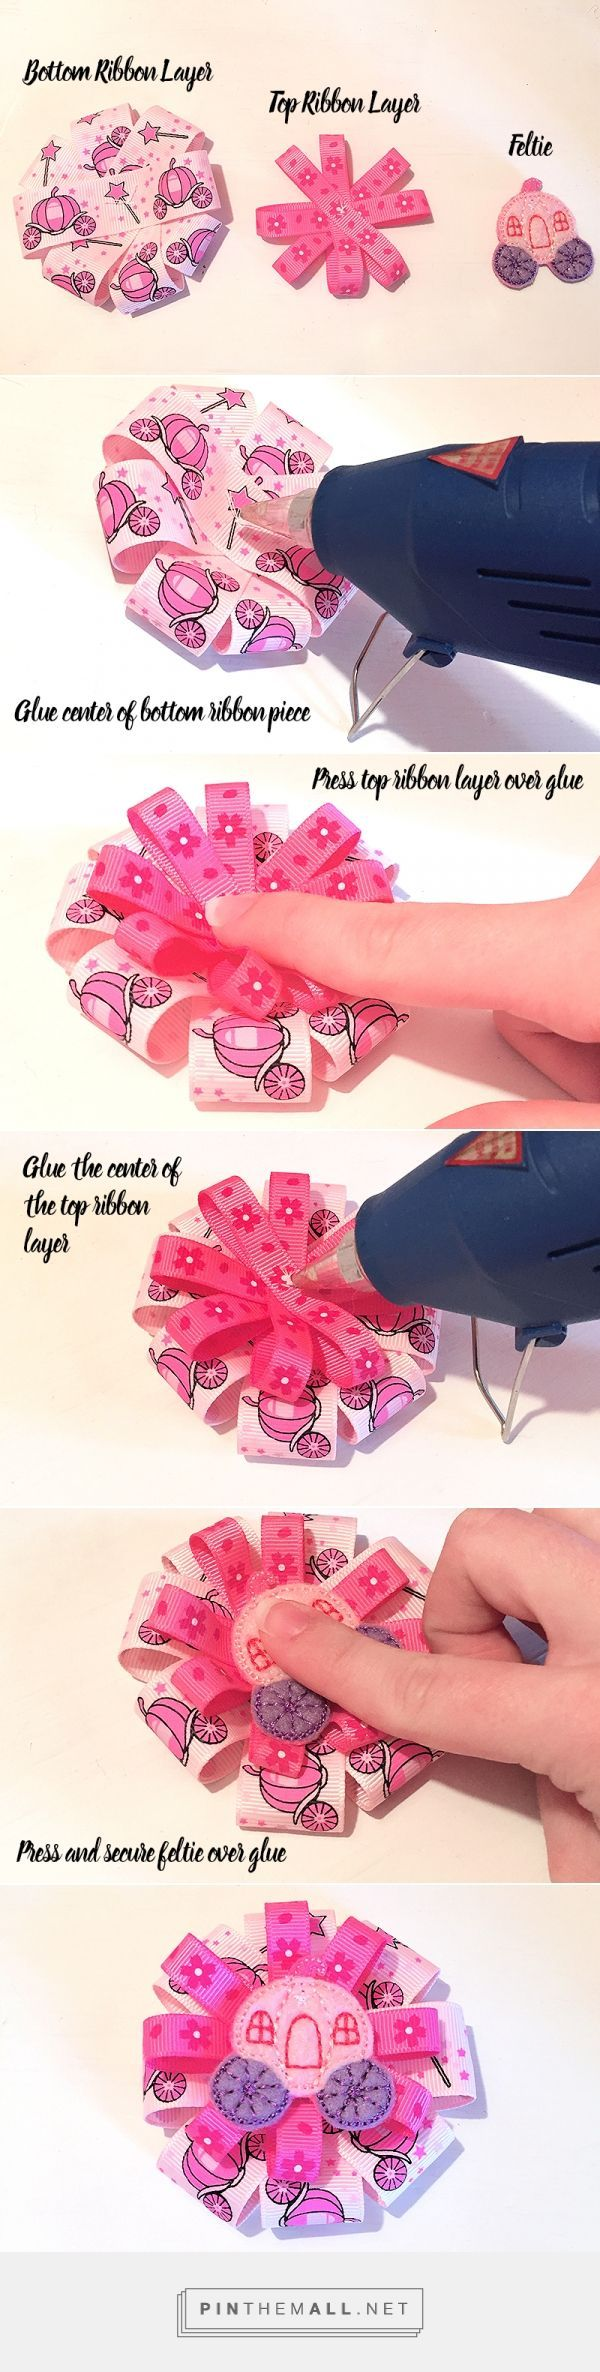 How to make a ribbon hair bow with a machine embroidered feltie how to make a ribbon hair bow with a machine embroidered feltie fast and easy diy cute bow crafting a grouped images picture baditri Image collections